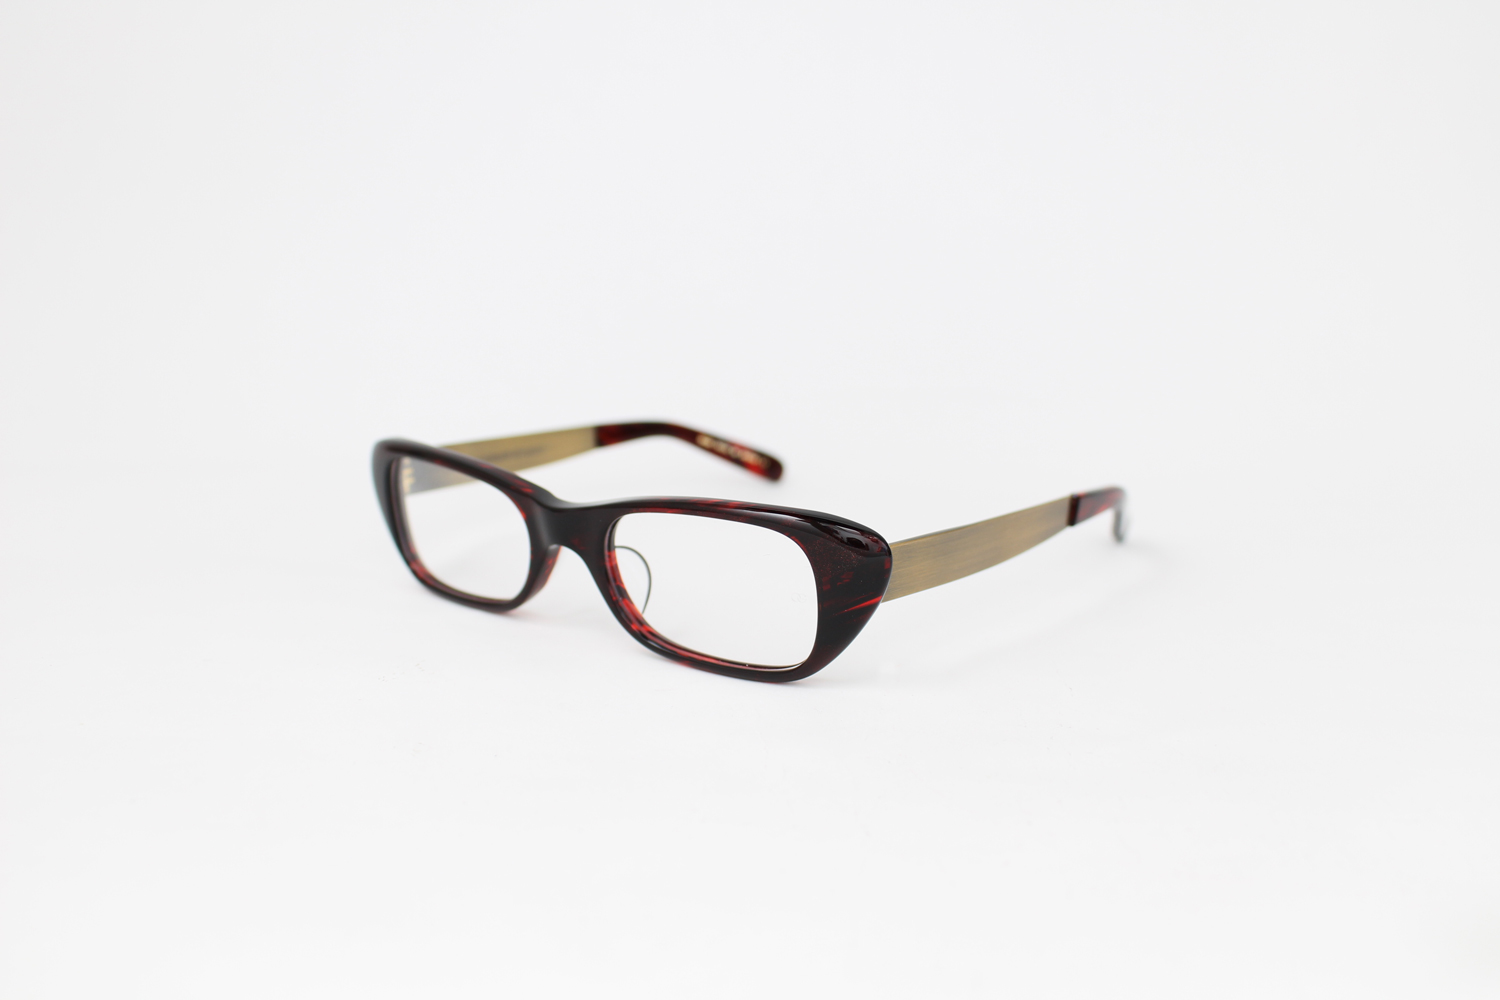 OG_HOPE_Red Tiger_38000yen